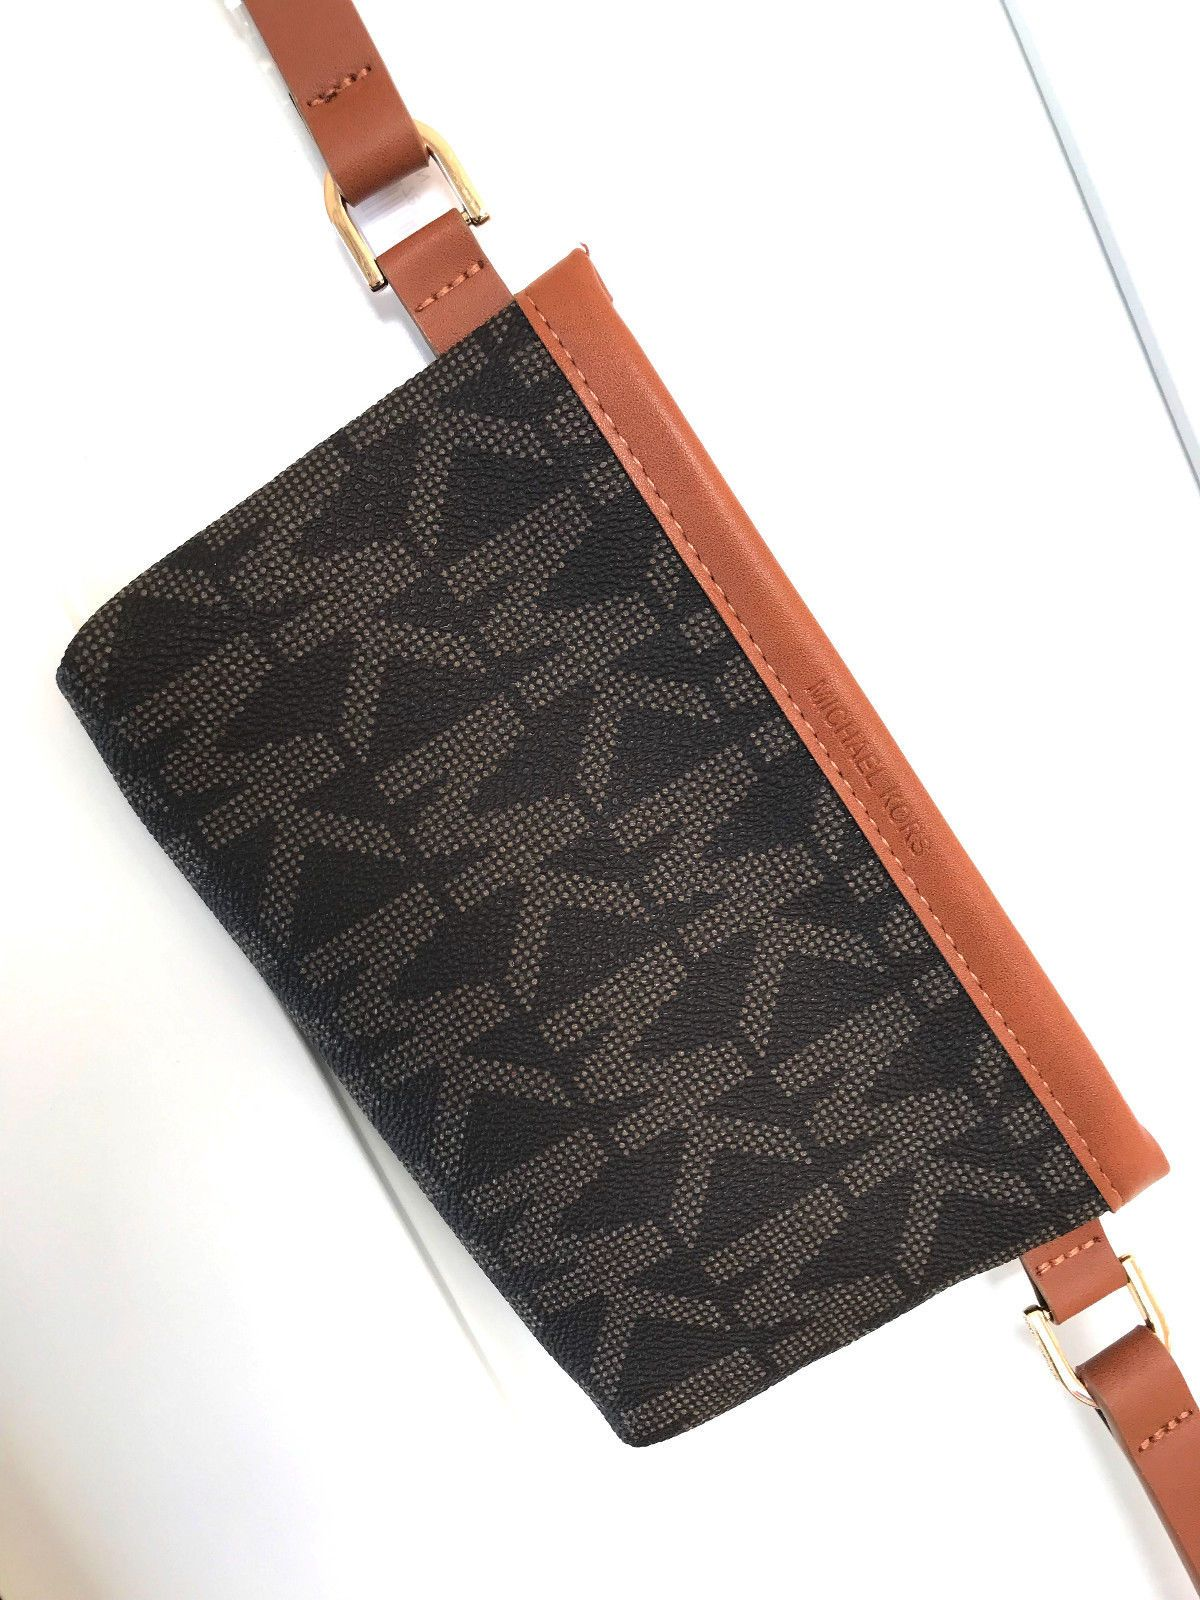 6a3dadfabd9d NWT Michael Kors MK Signature Belt Wallet Fanny Pack Bag Travel Pouch  Leather S